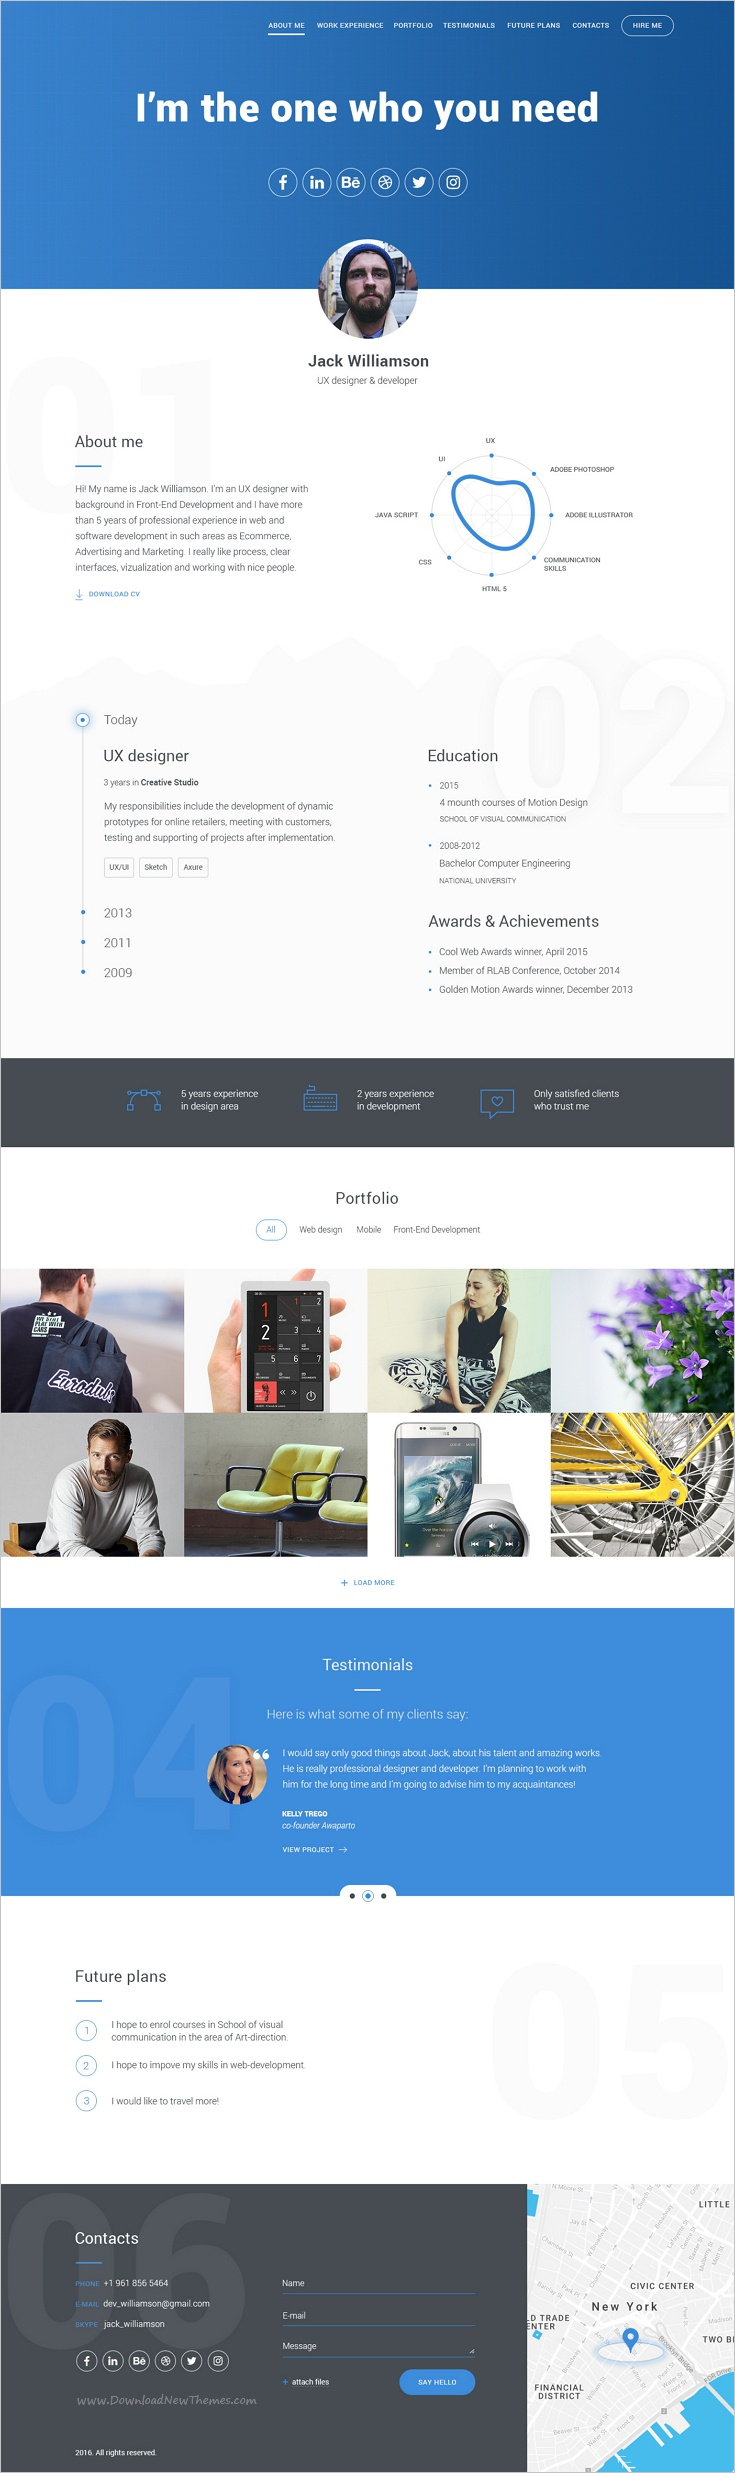 Portfolio For Resume Awesome Cv & Portfolio  Resume Psd Template  Pinterest  Psd Templates .